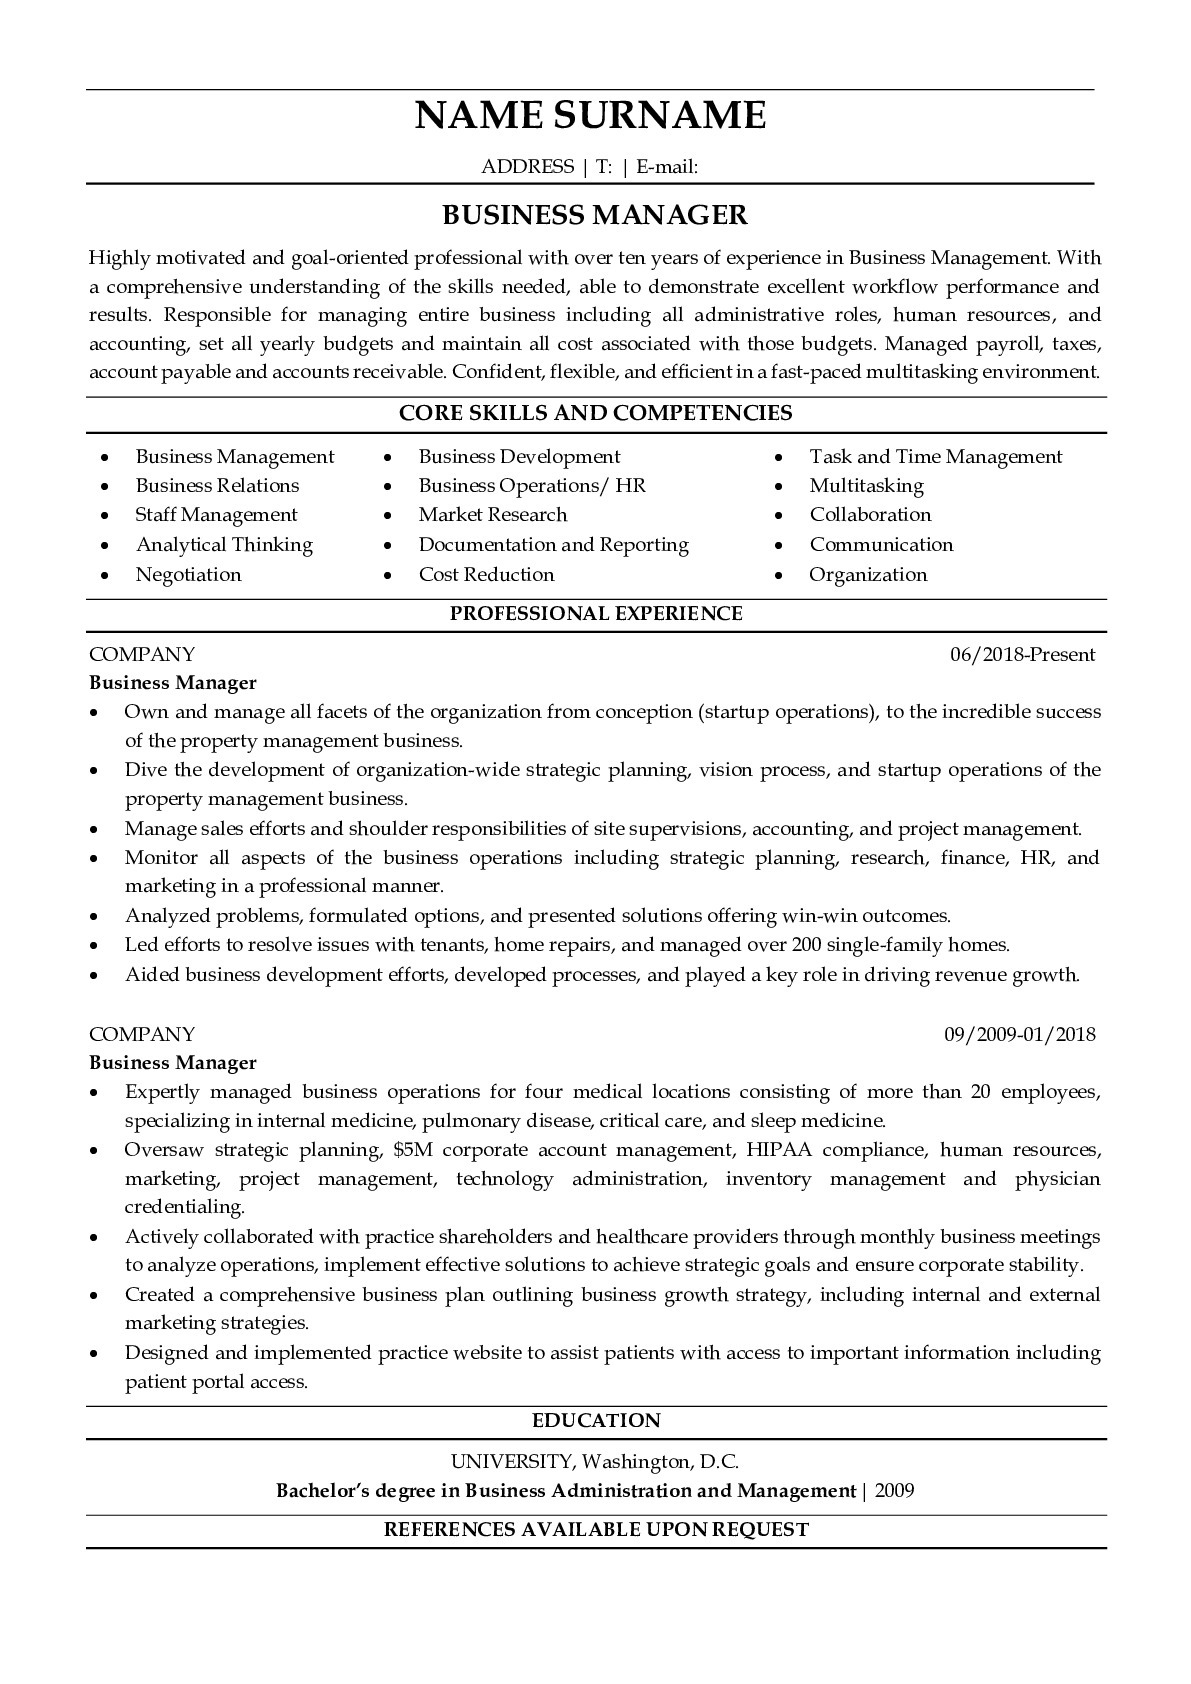 Resume Example for Business Manager